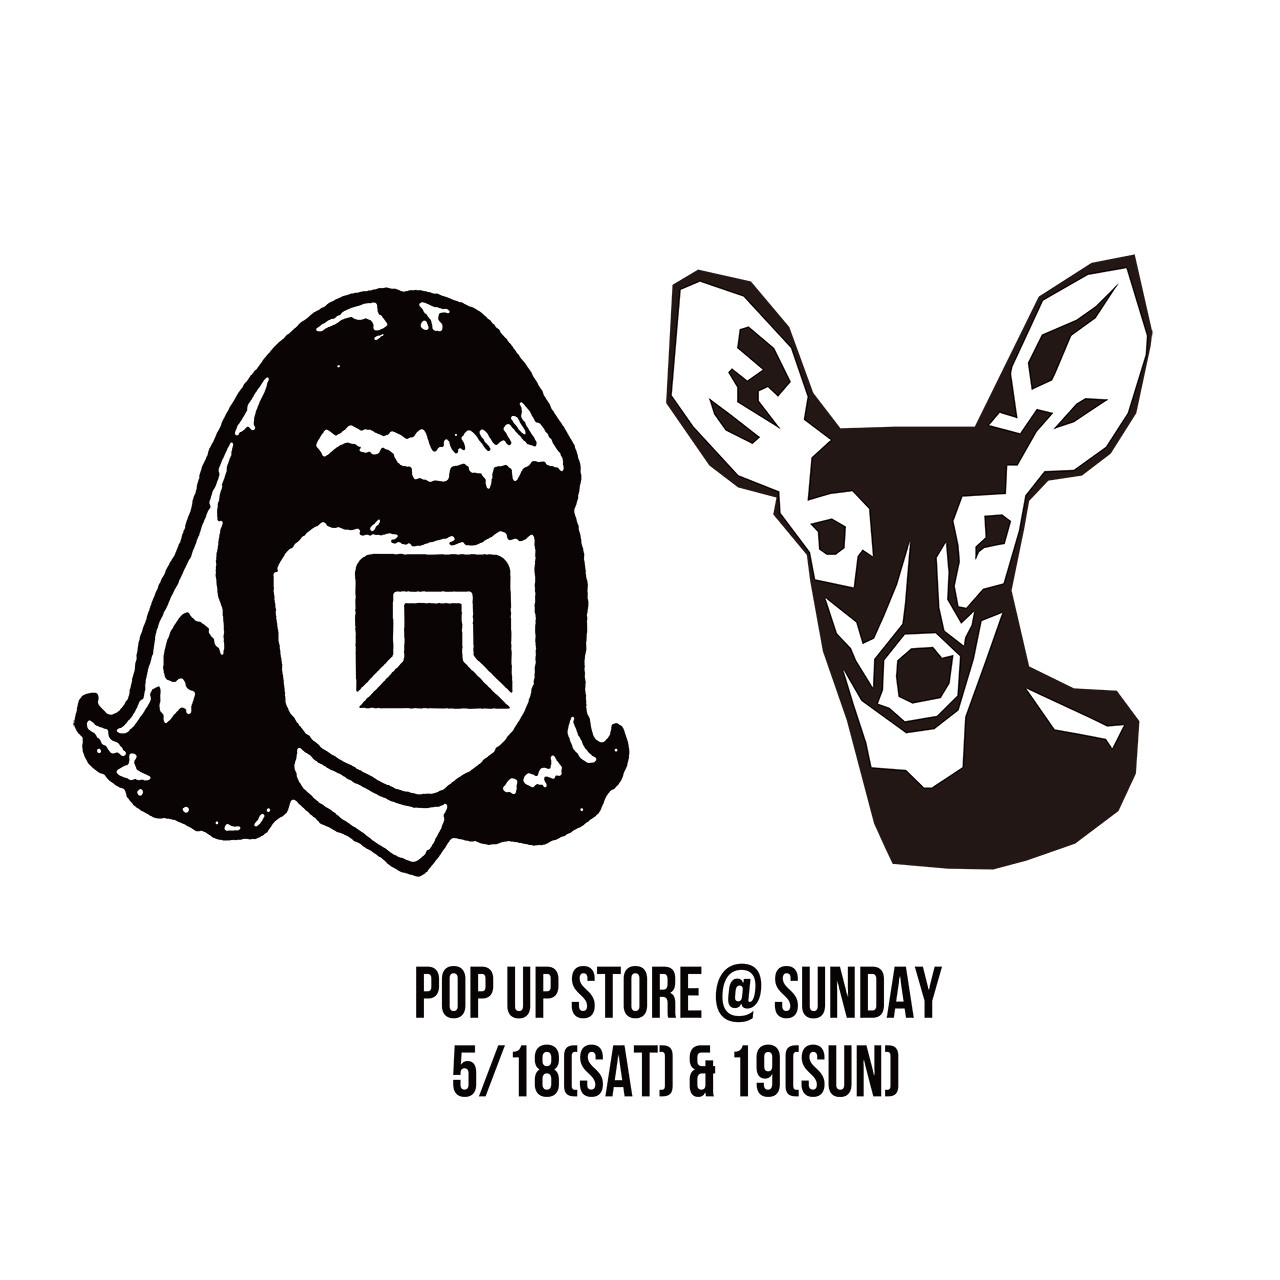 POP UP STORE @ SUNDAY